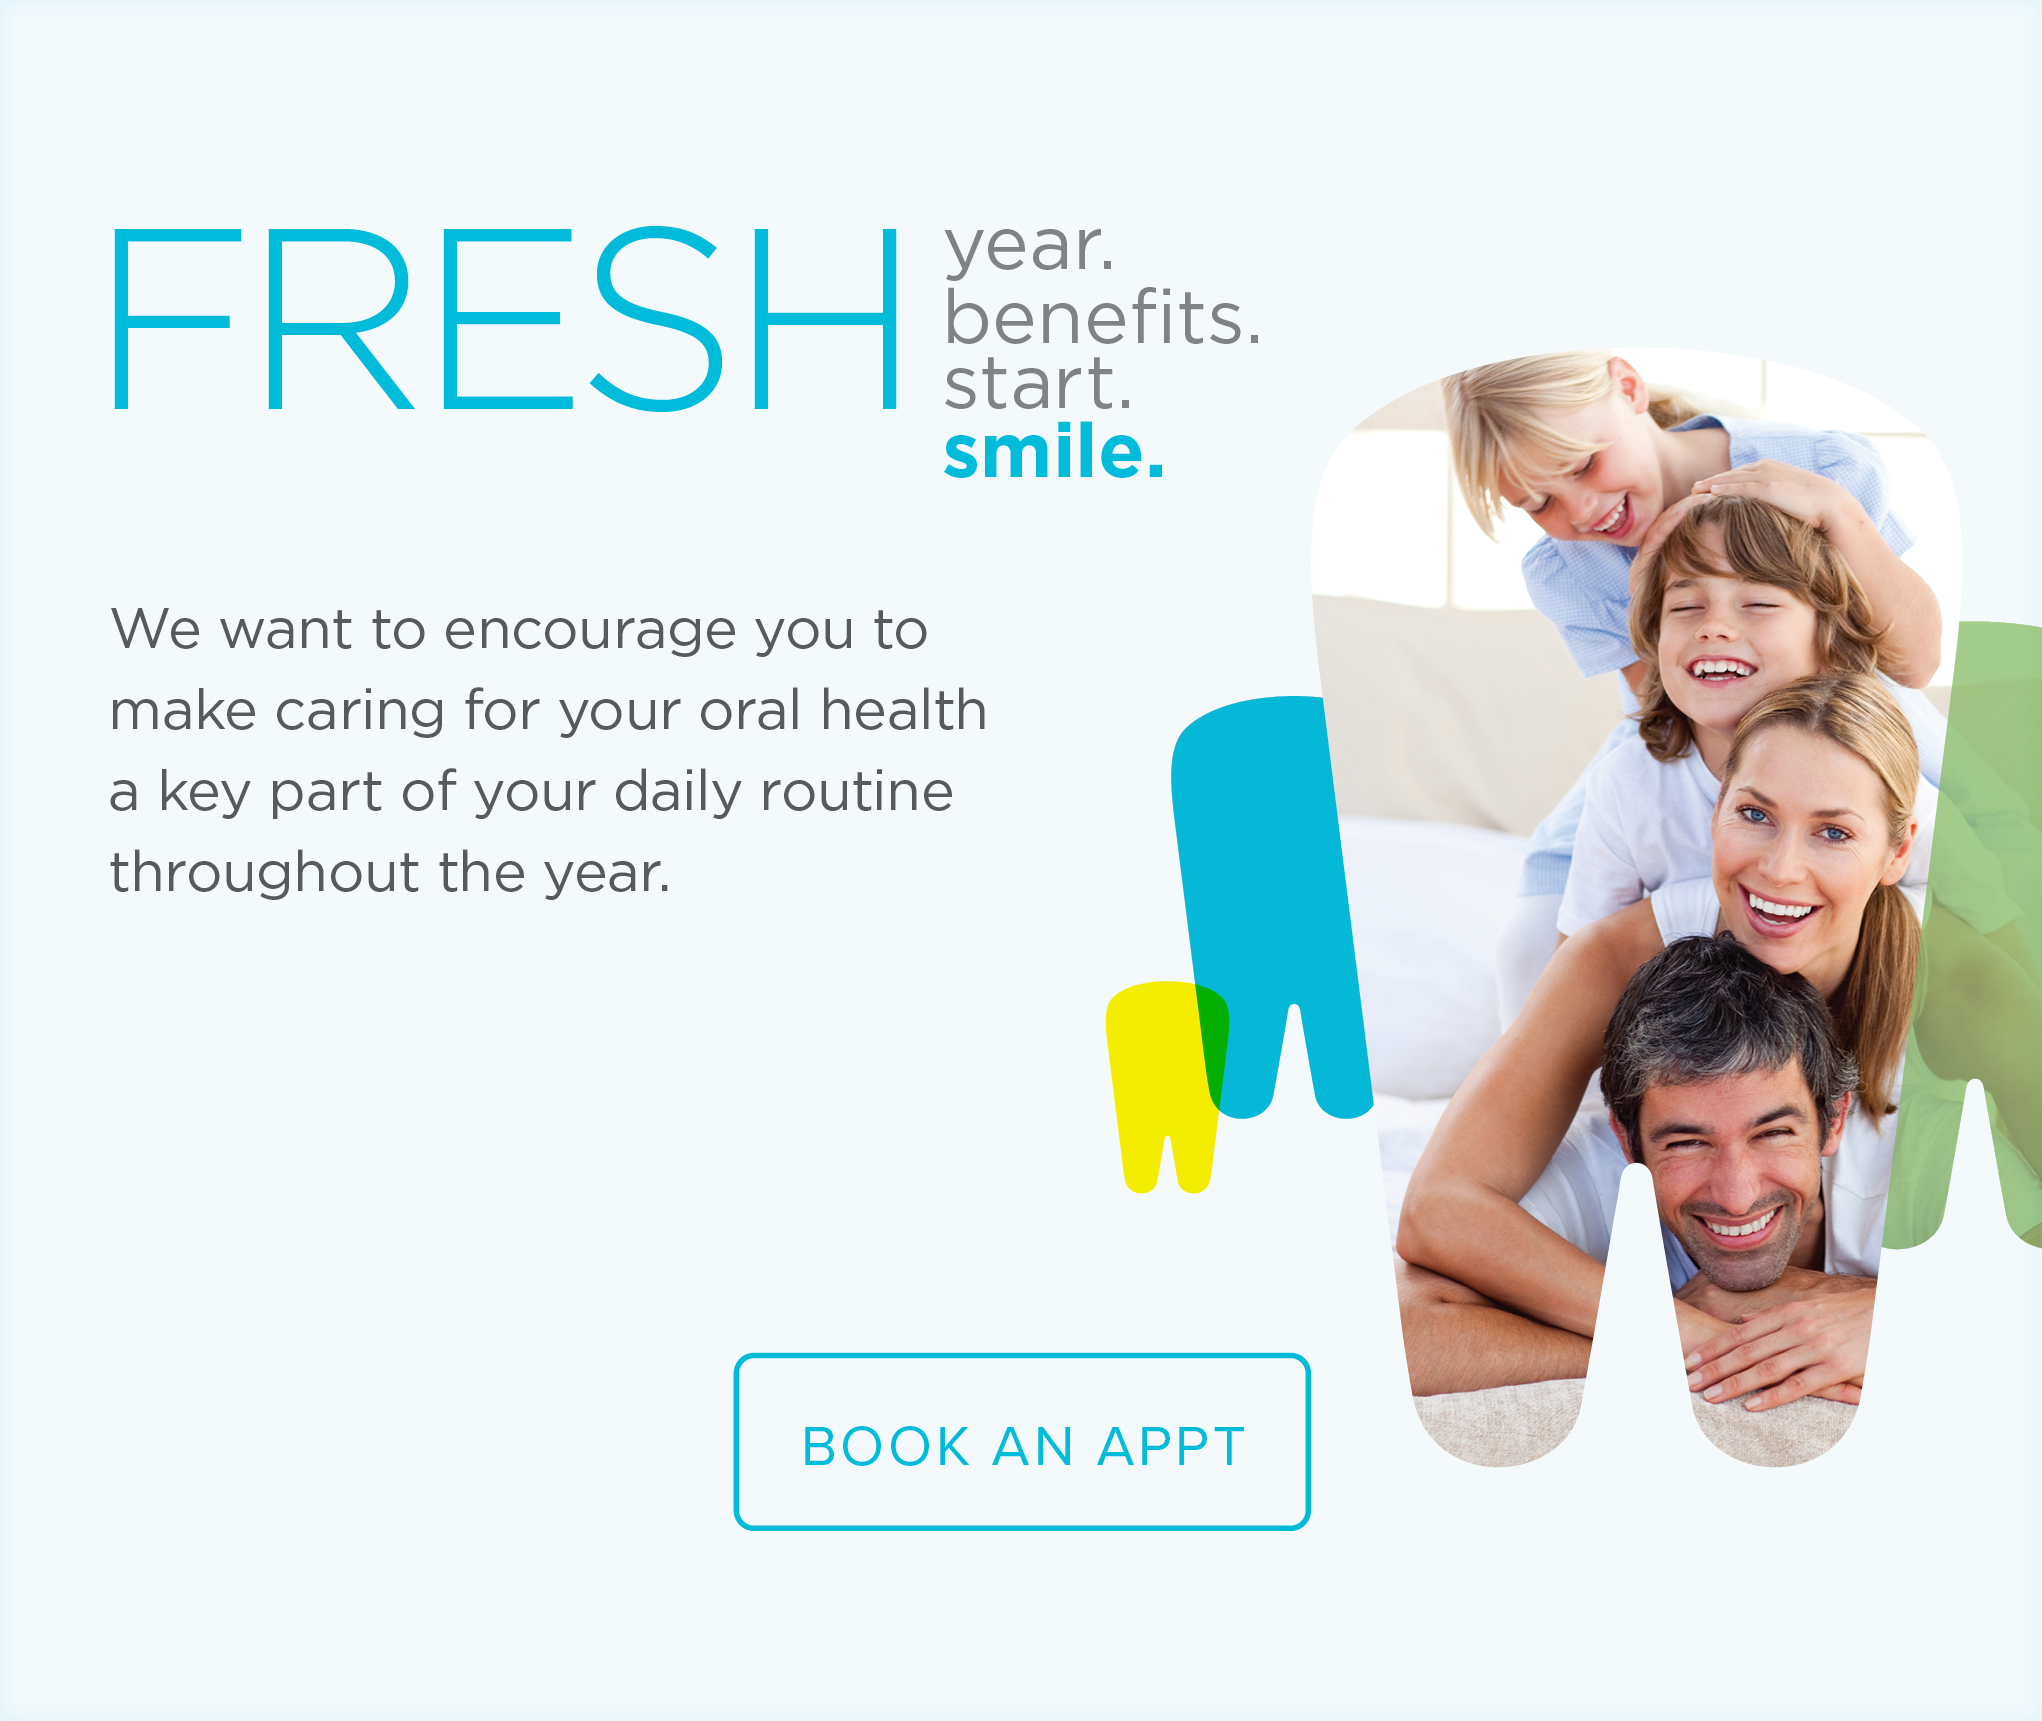 West Jordan Modern Dentistry and Orthodontics - Make the Most of Your Benefits